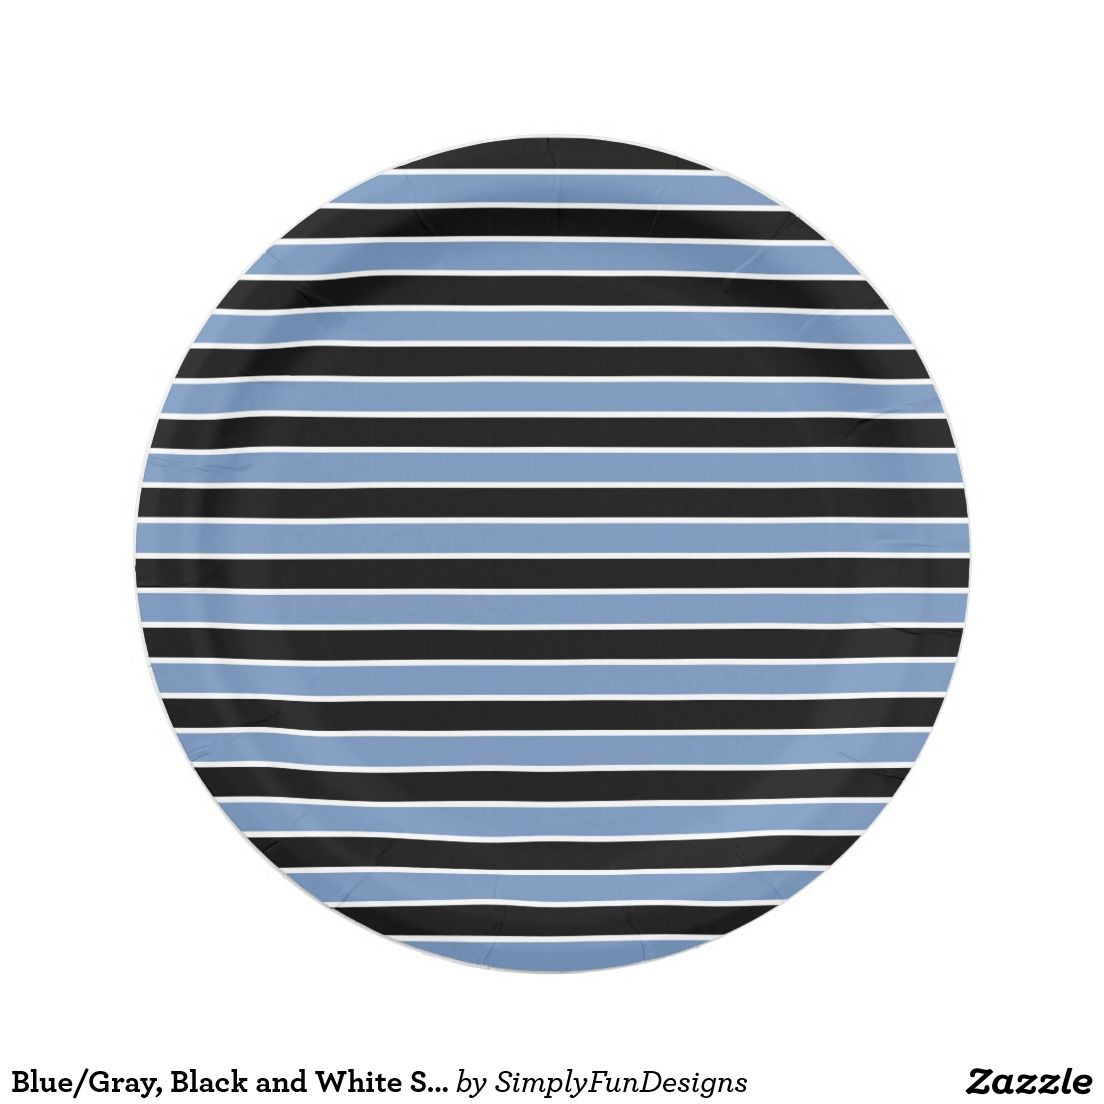 Blue/Gray Black and White Stripes Paper Plate  sc 1 st  Pinterest & Blue/Gray Black and White Stripes Paper Plate | Zazzle products ...